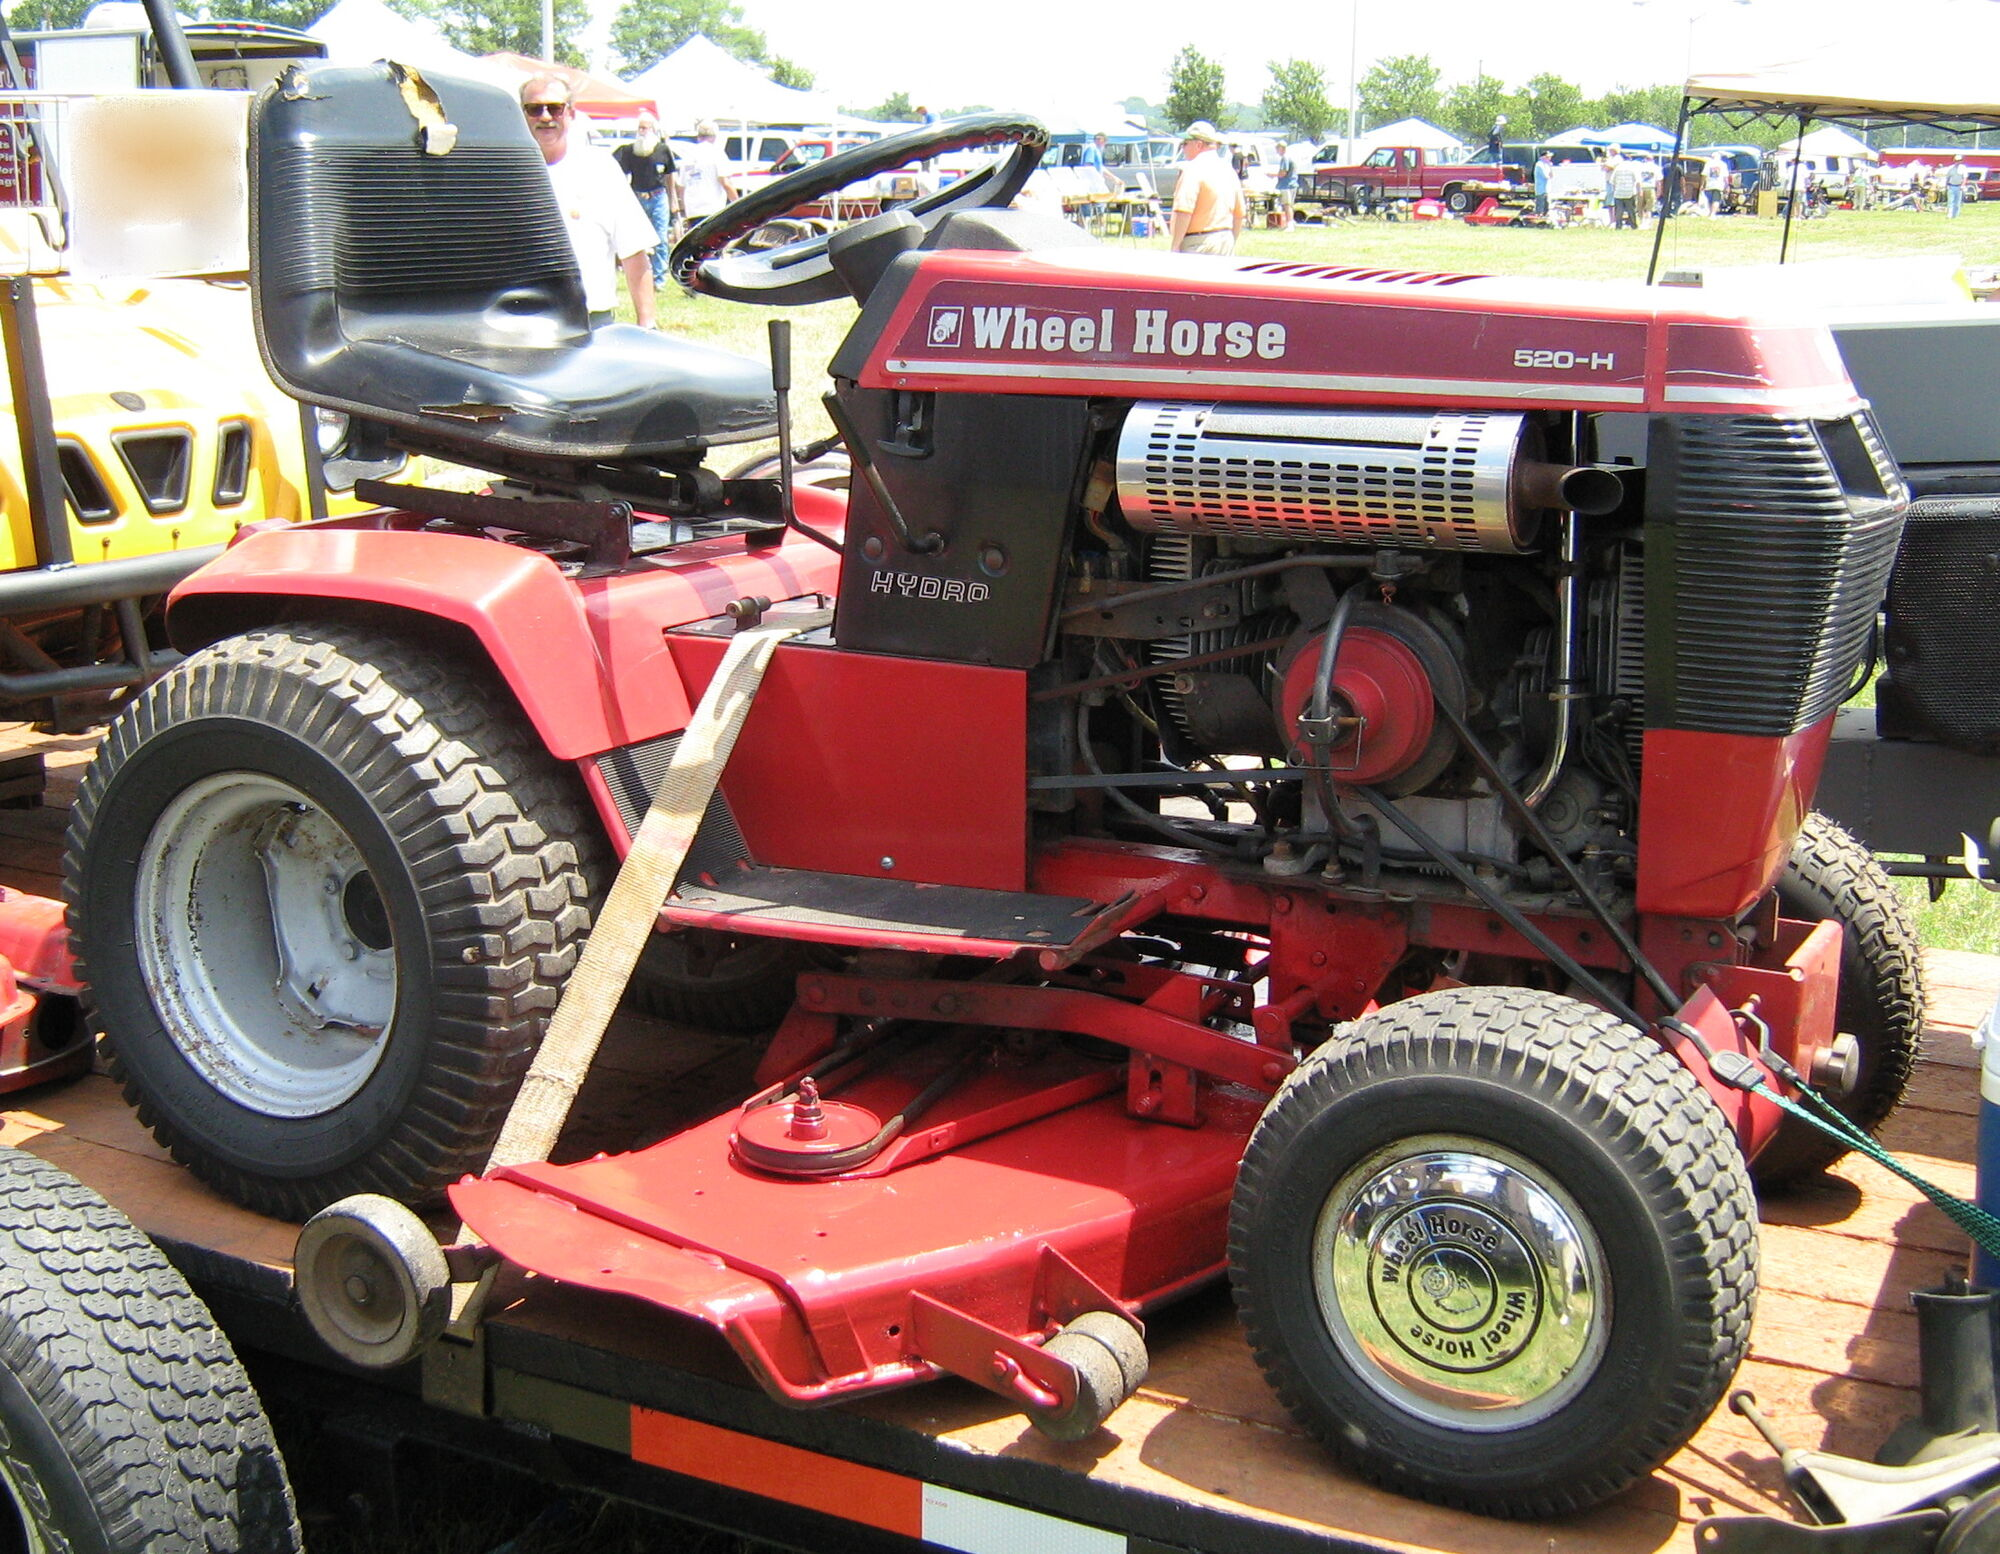 Wheel Horse Tractors Tractor Amp Construction Plant Wiki